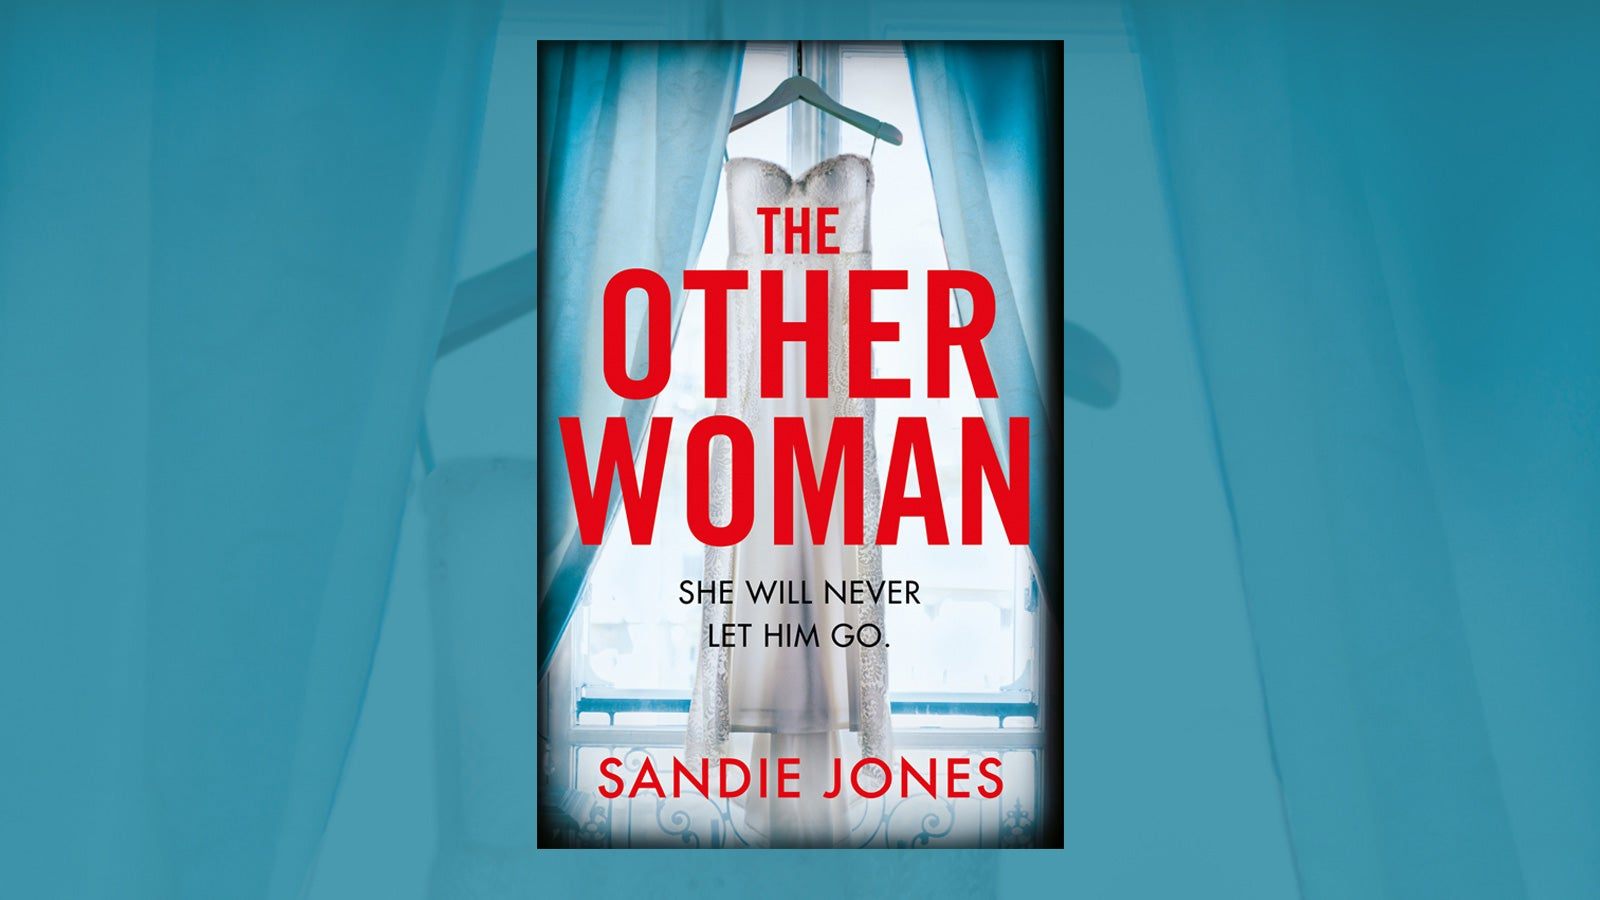 Book cover of The Other Woman on a blue background